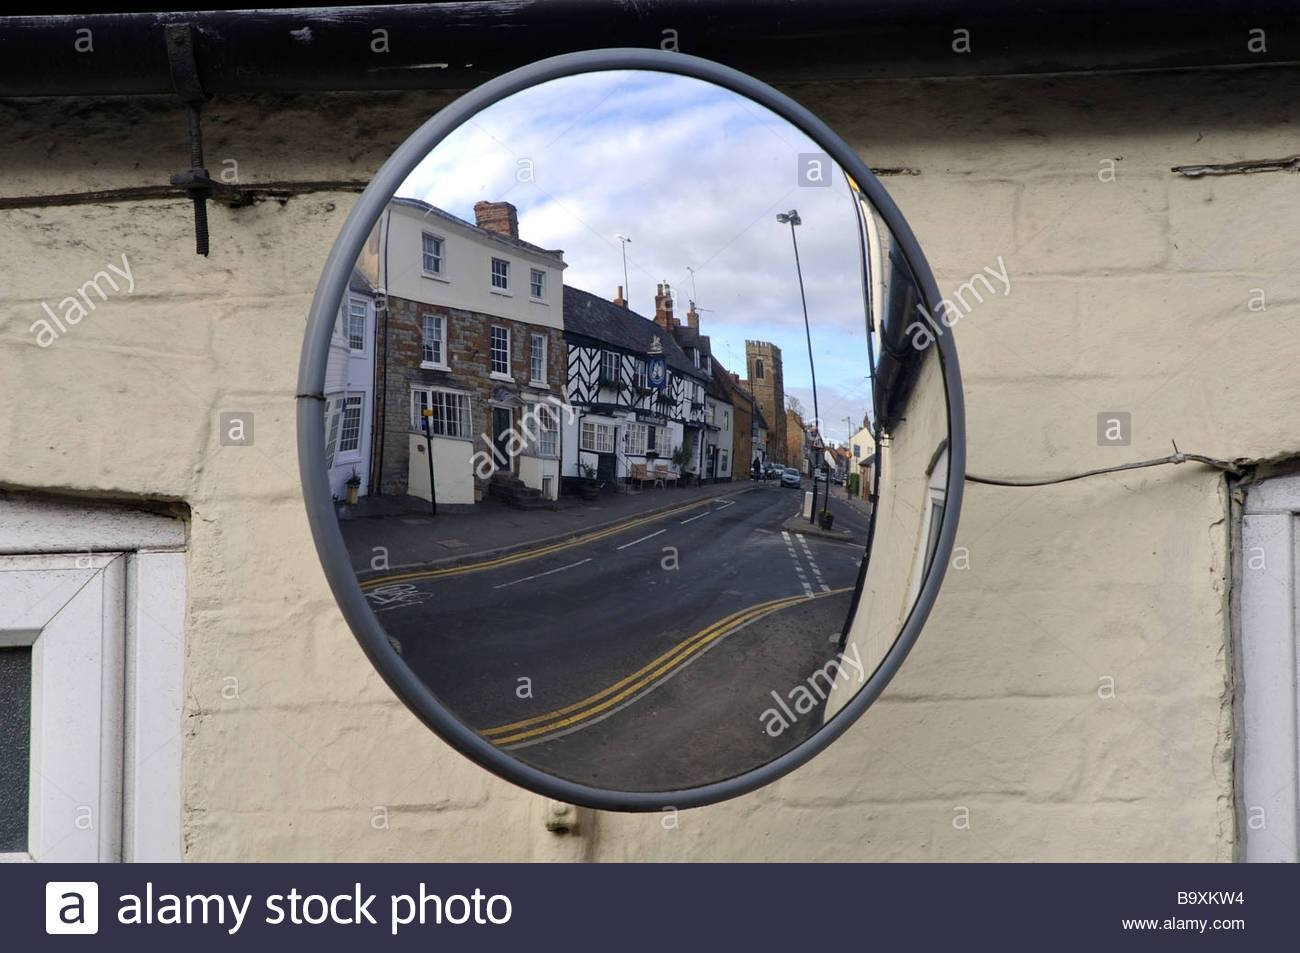 Convex Mirror In Street, Uk Stock Photo, Royalty Free Image pertaining to Convex Mirrors (Image 1 of 15)